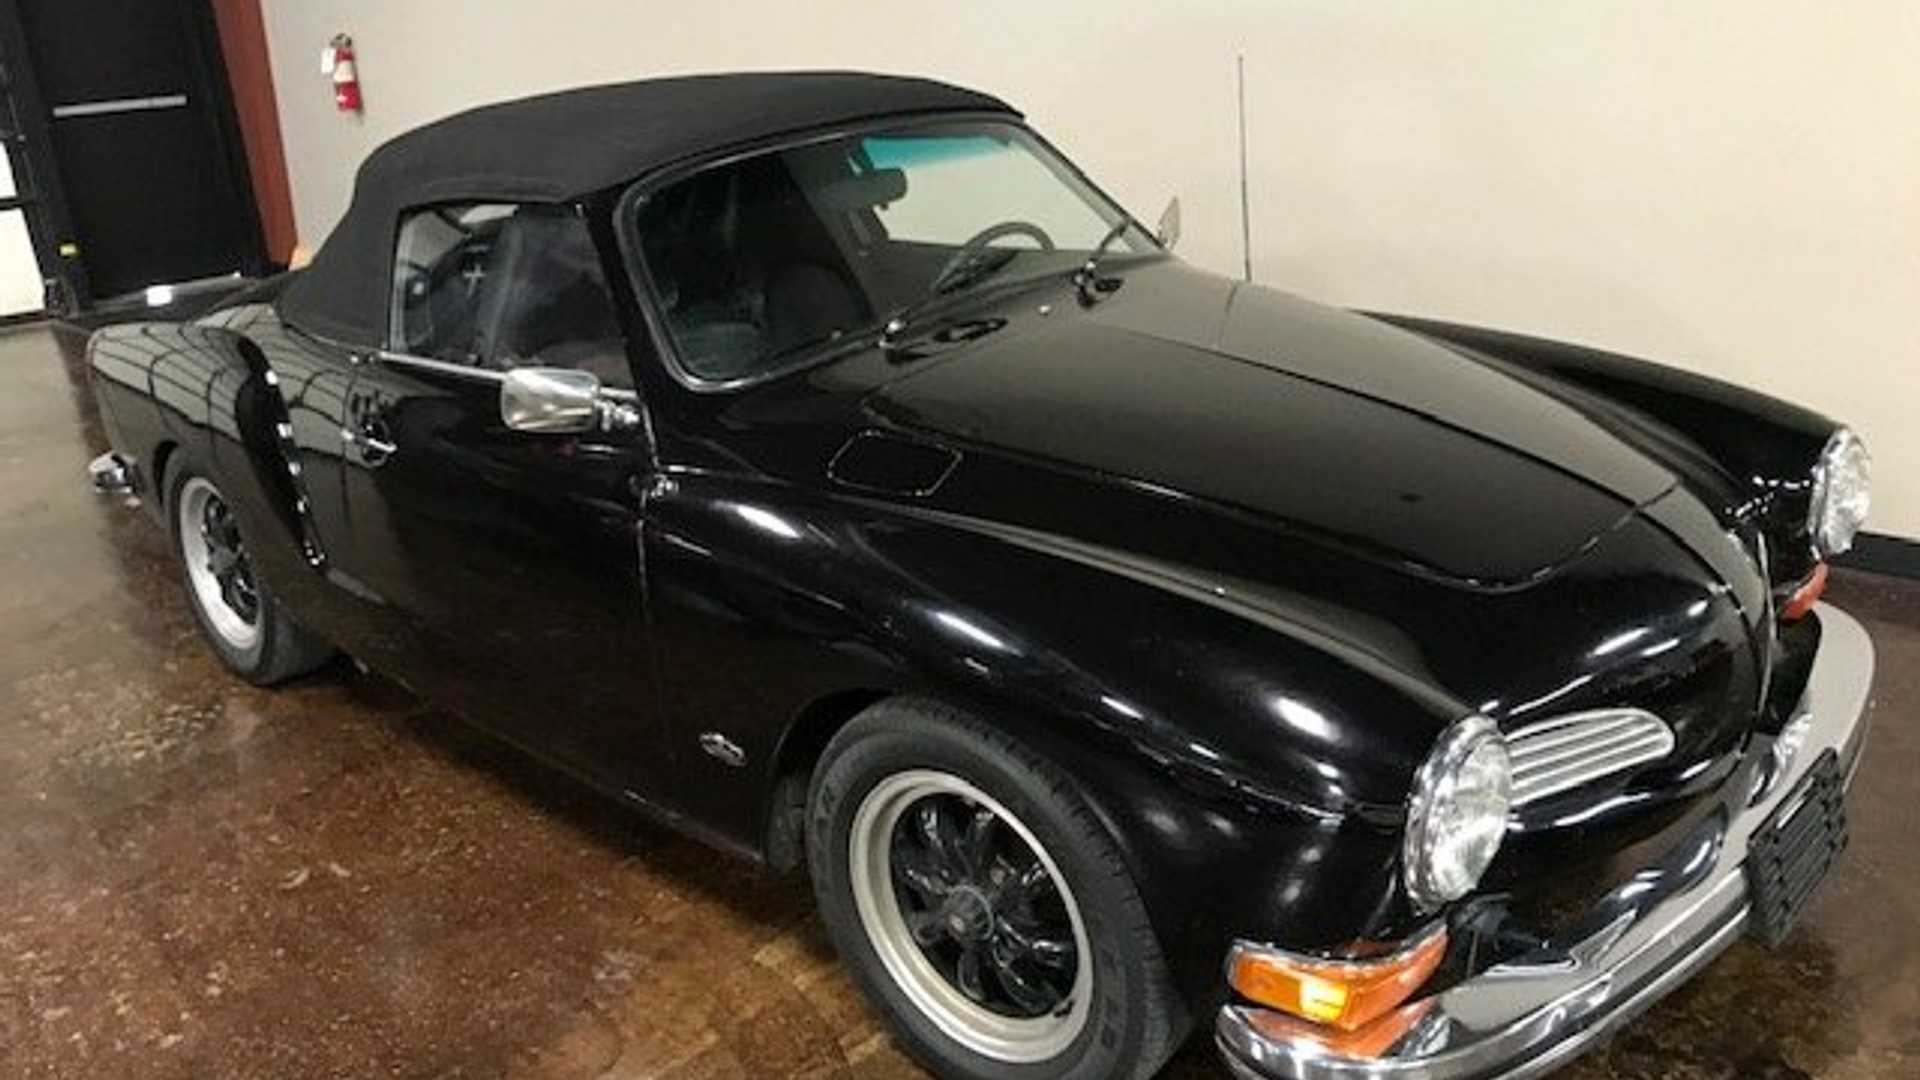 Enjoy Summer Cruising In This 1973 Volkswagen Karmann Ghia Convertible